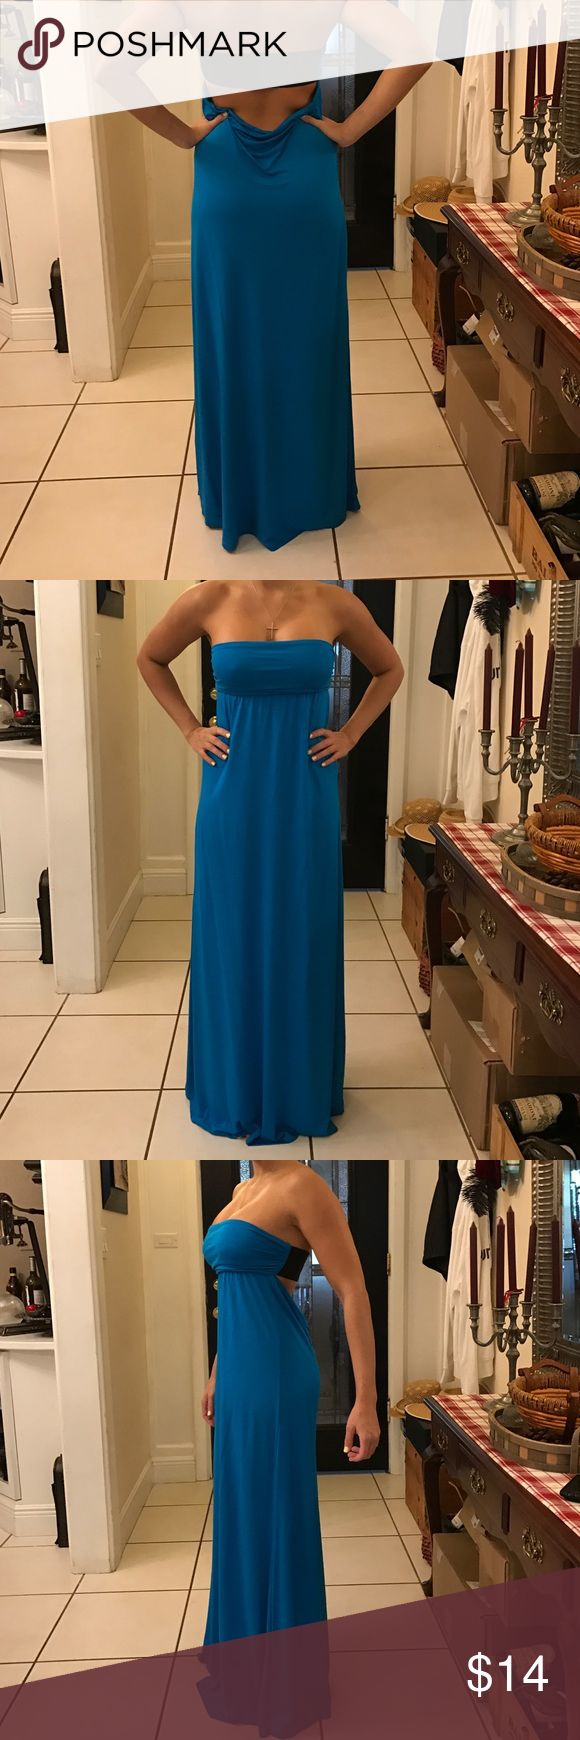 Electric blue maxi dress Strapless electric blue maxi dress. Worn twice. Size small. Bought from Venus. Cute for the beach or just to go out :) Dresses Maxi